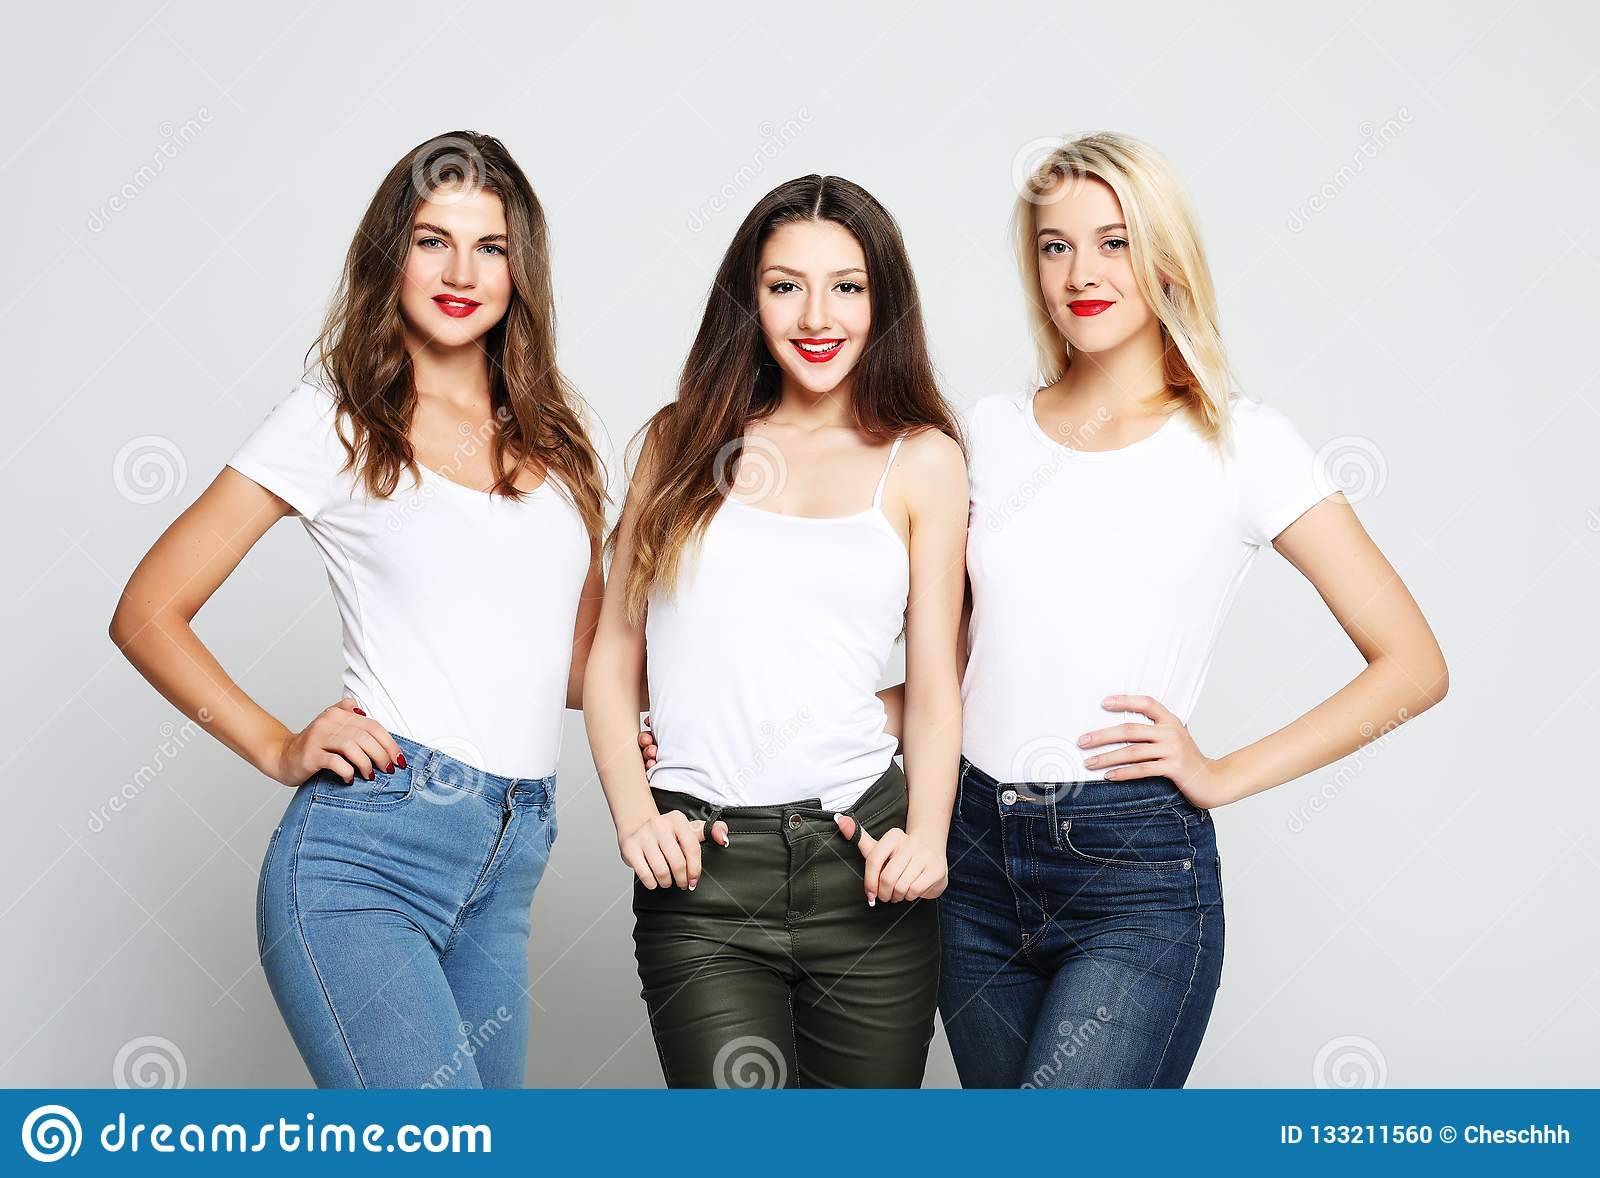 Girls Smiling And Having Fun Stock Photo Image Of Friends Cute 133211560